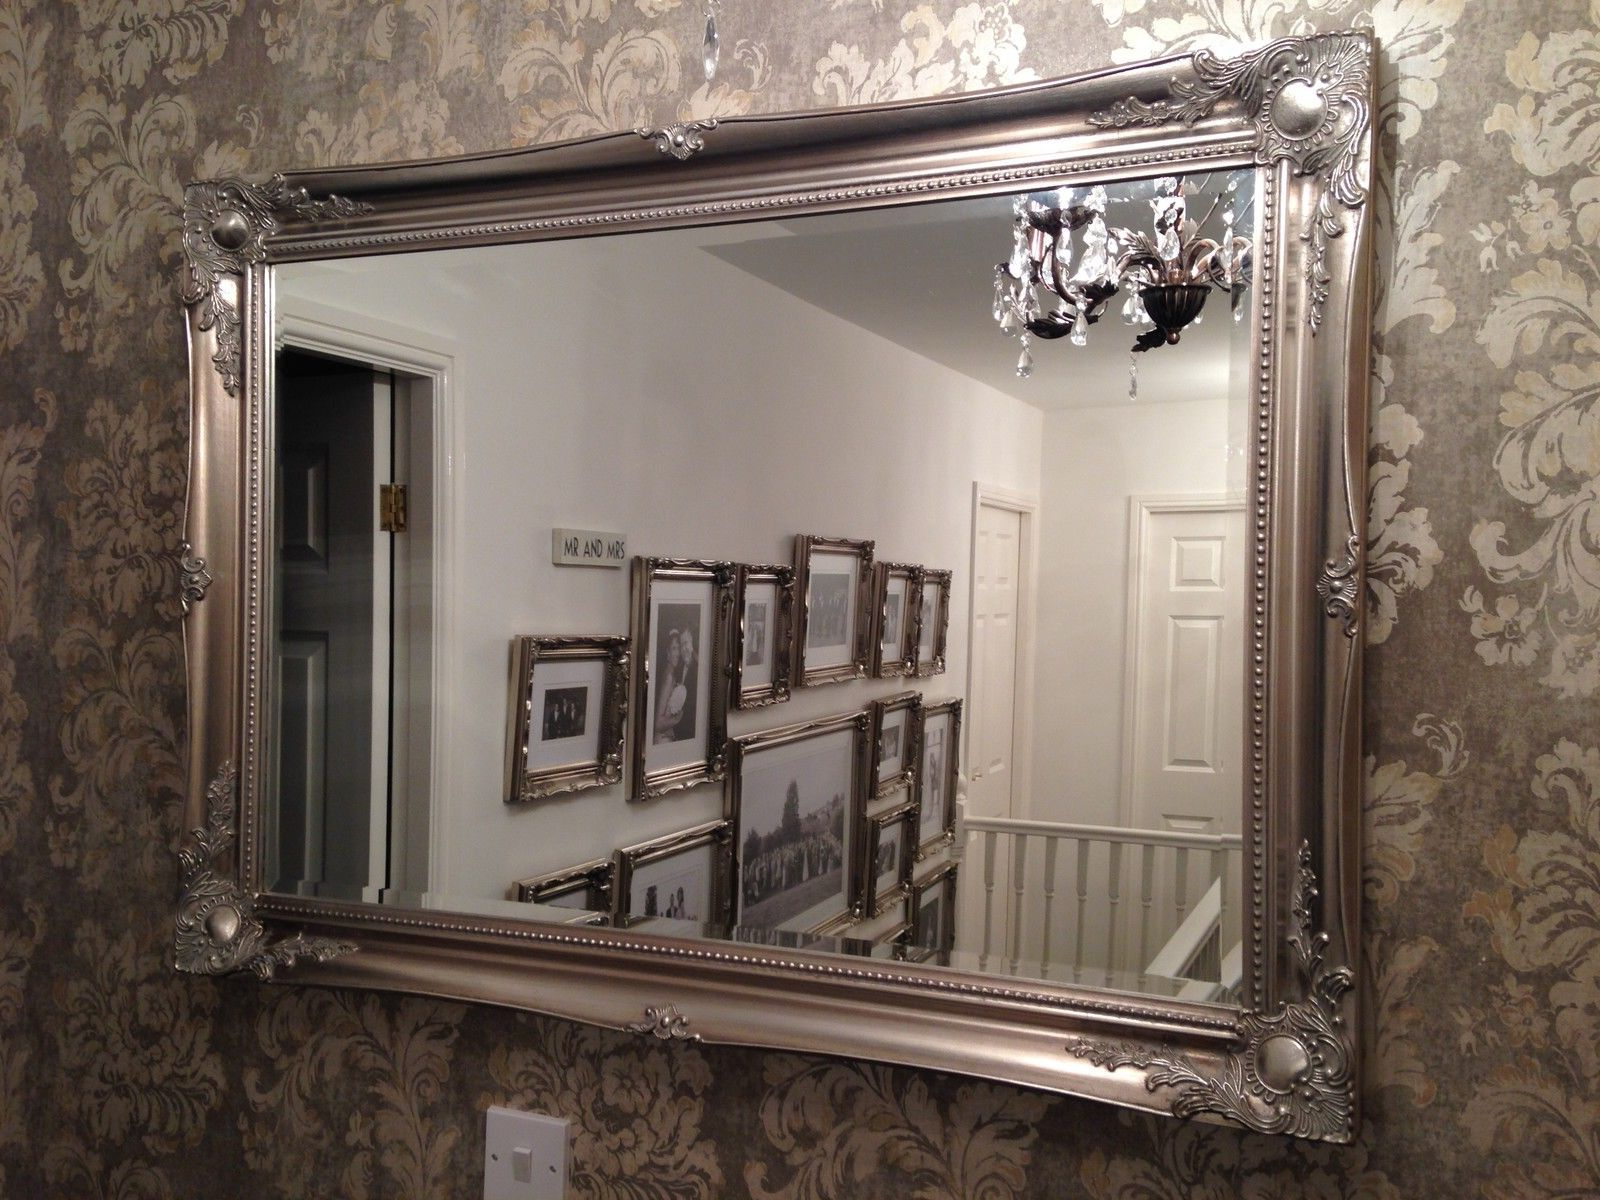 Most Up To Date X Large Antique Silver Shabby Chic Ornate Decorative Wall Mirror Save ££s Inside Horizontal Decorative Wall Mirrors (View 13 of 20)